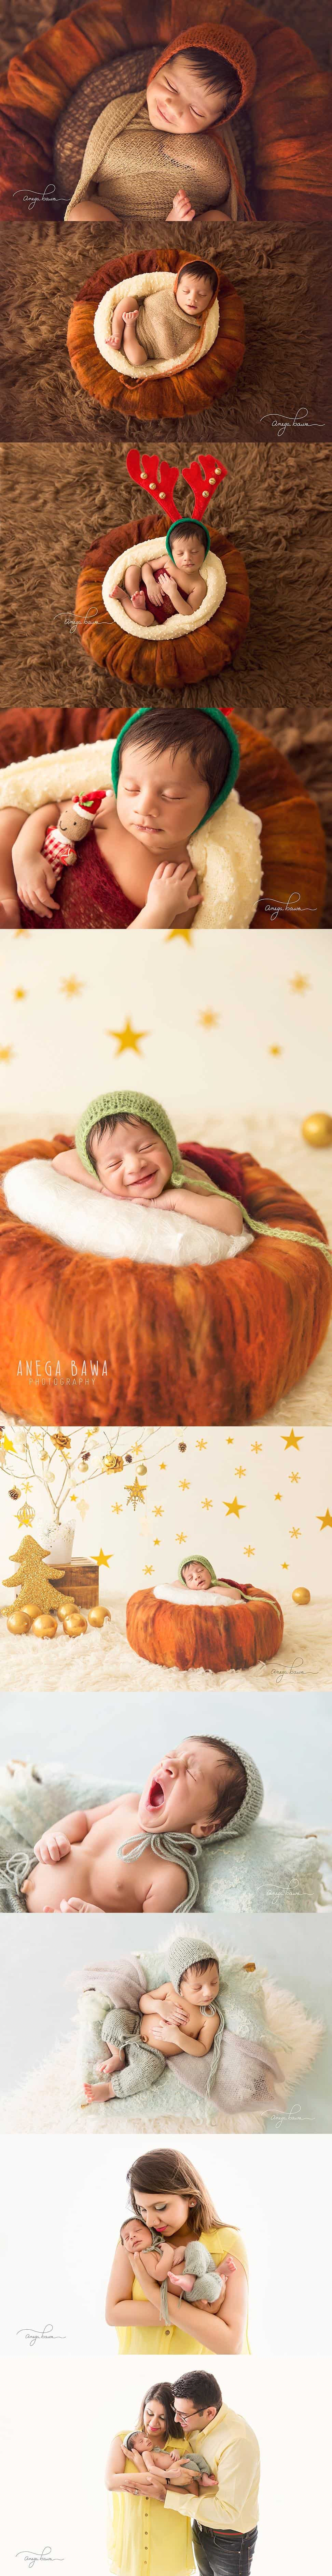 newborn infant photographs of 11 day old boy by best newborn photographer in delhi gurgaon noida anega bawa photography